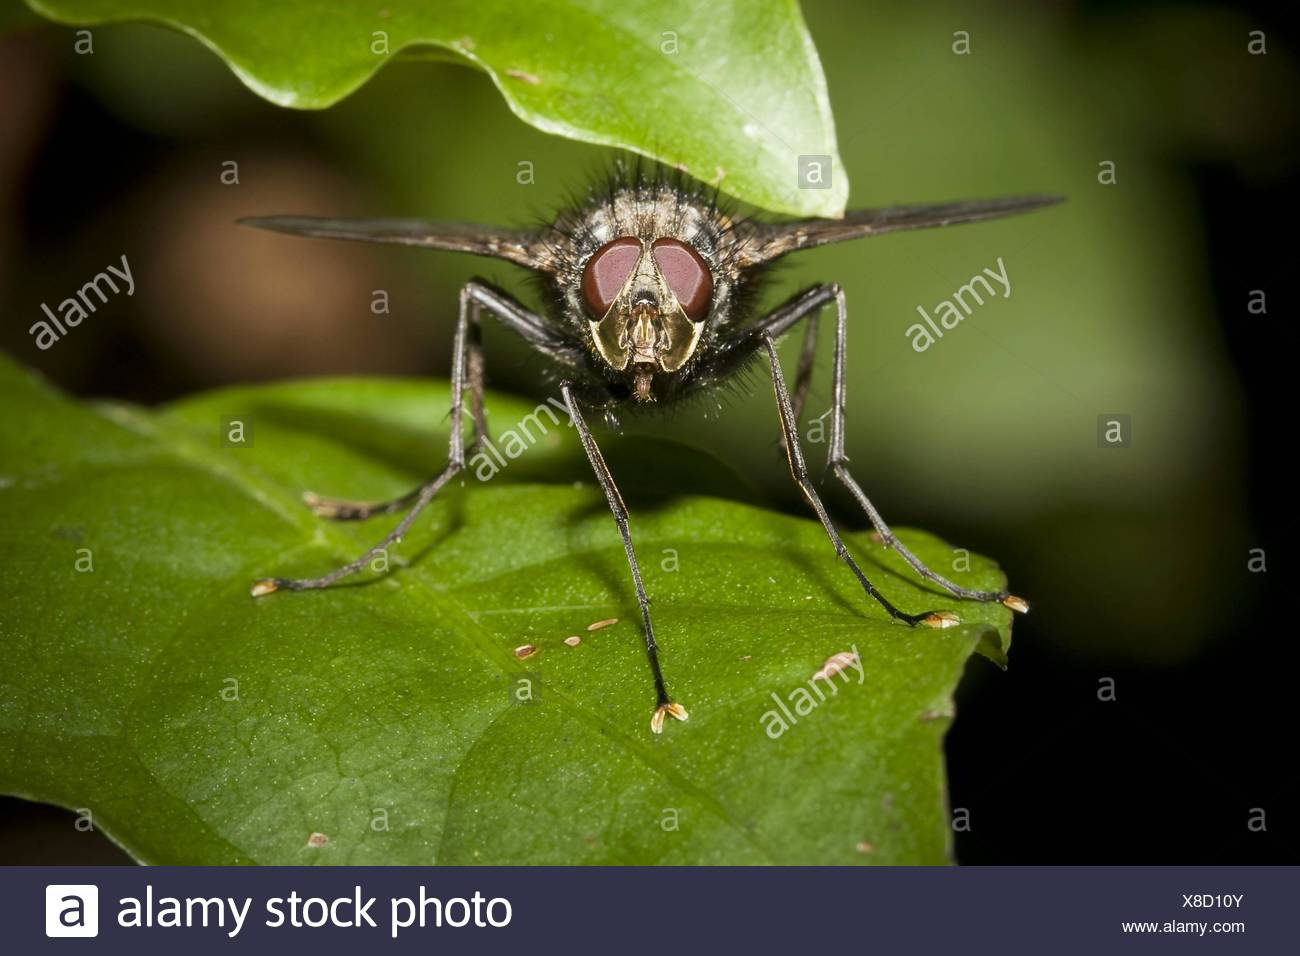 Tachinid fly, order Diptera, family Tachinidae  Photographed in Costa Rica Stock Photo